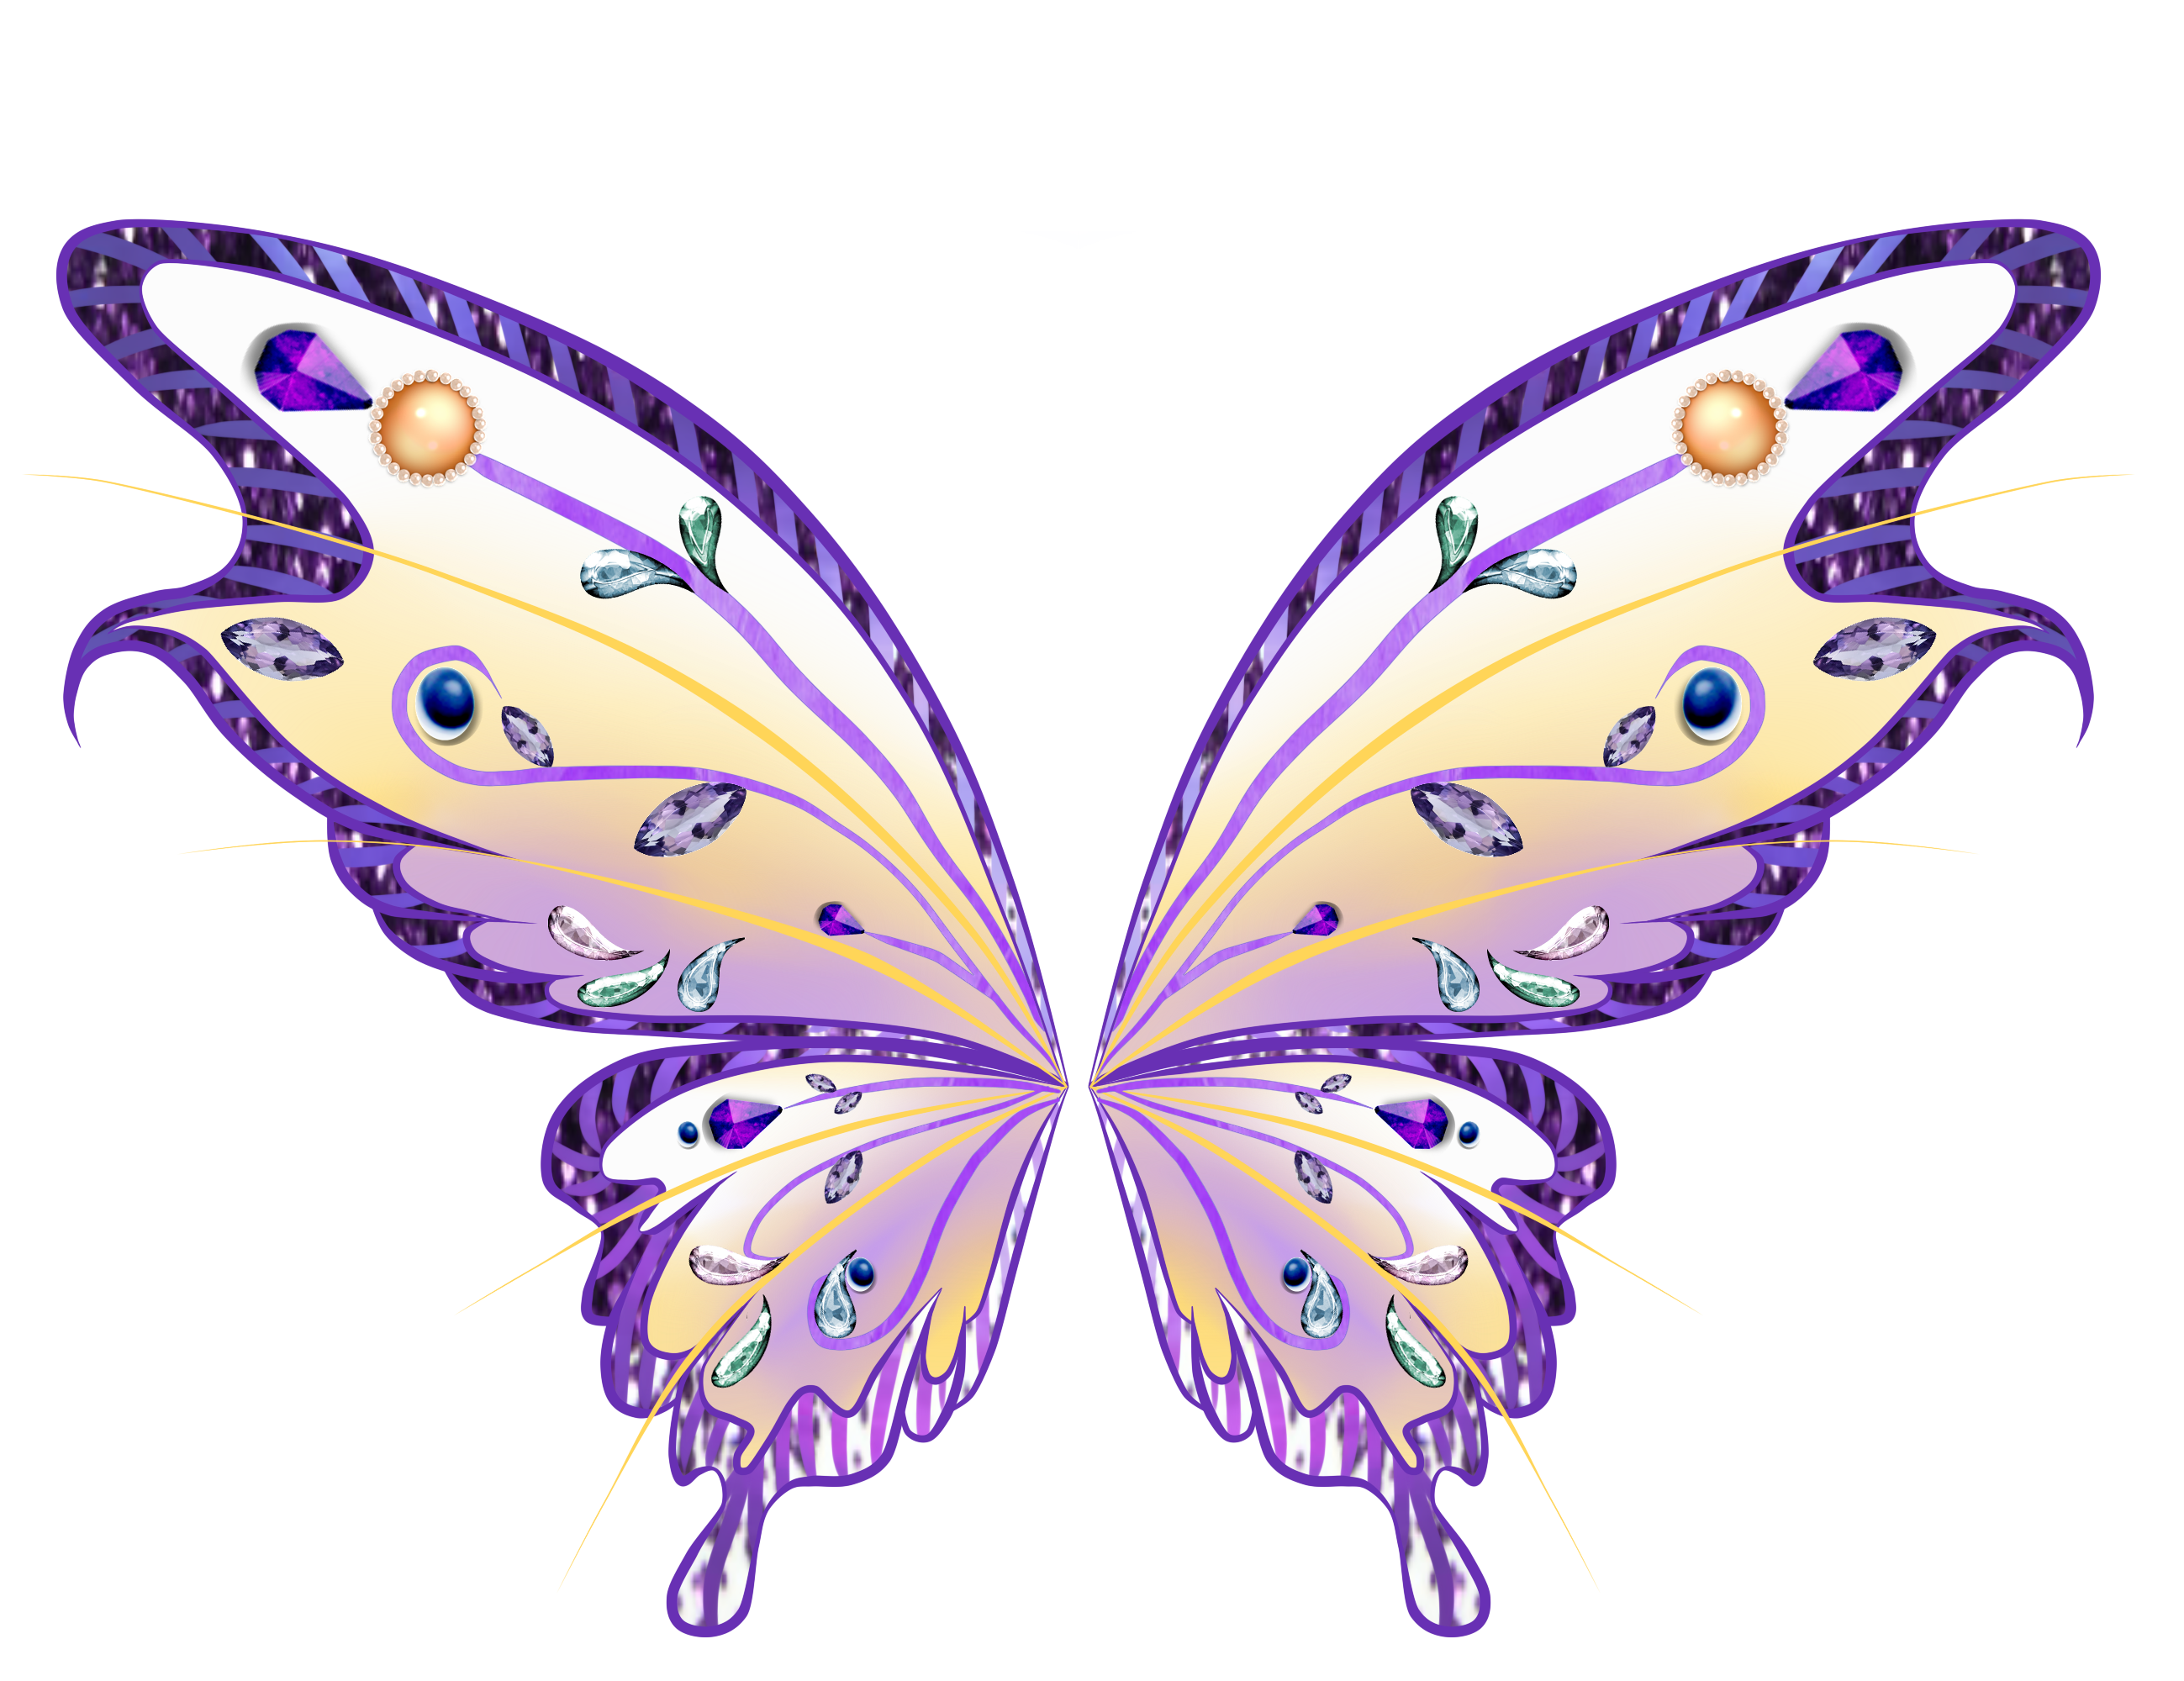 Fairy wing png. Viewing gallery for wings